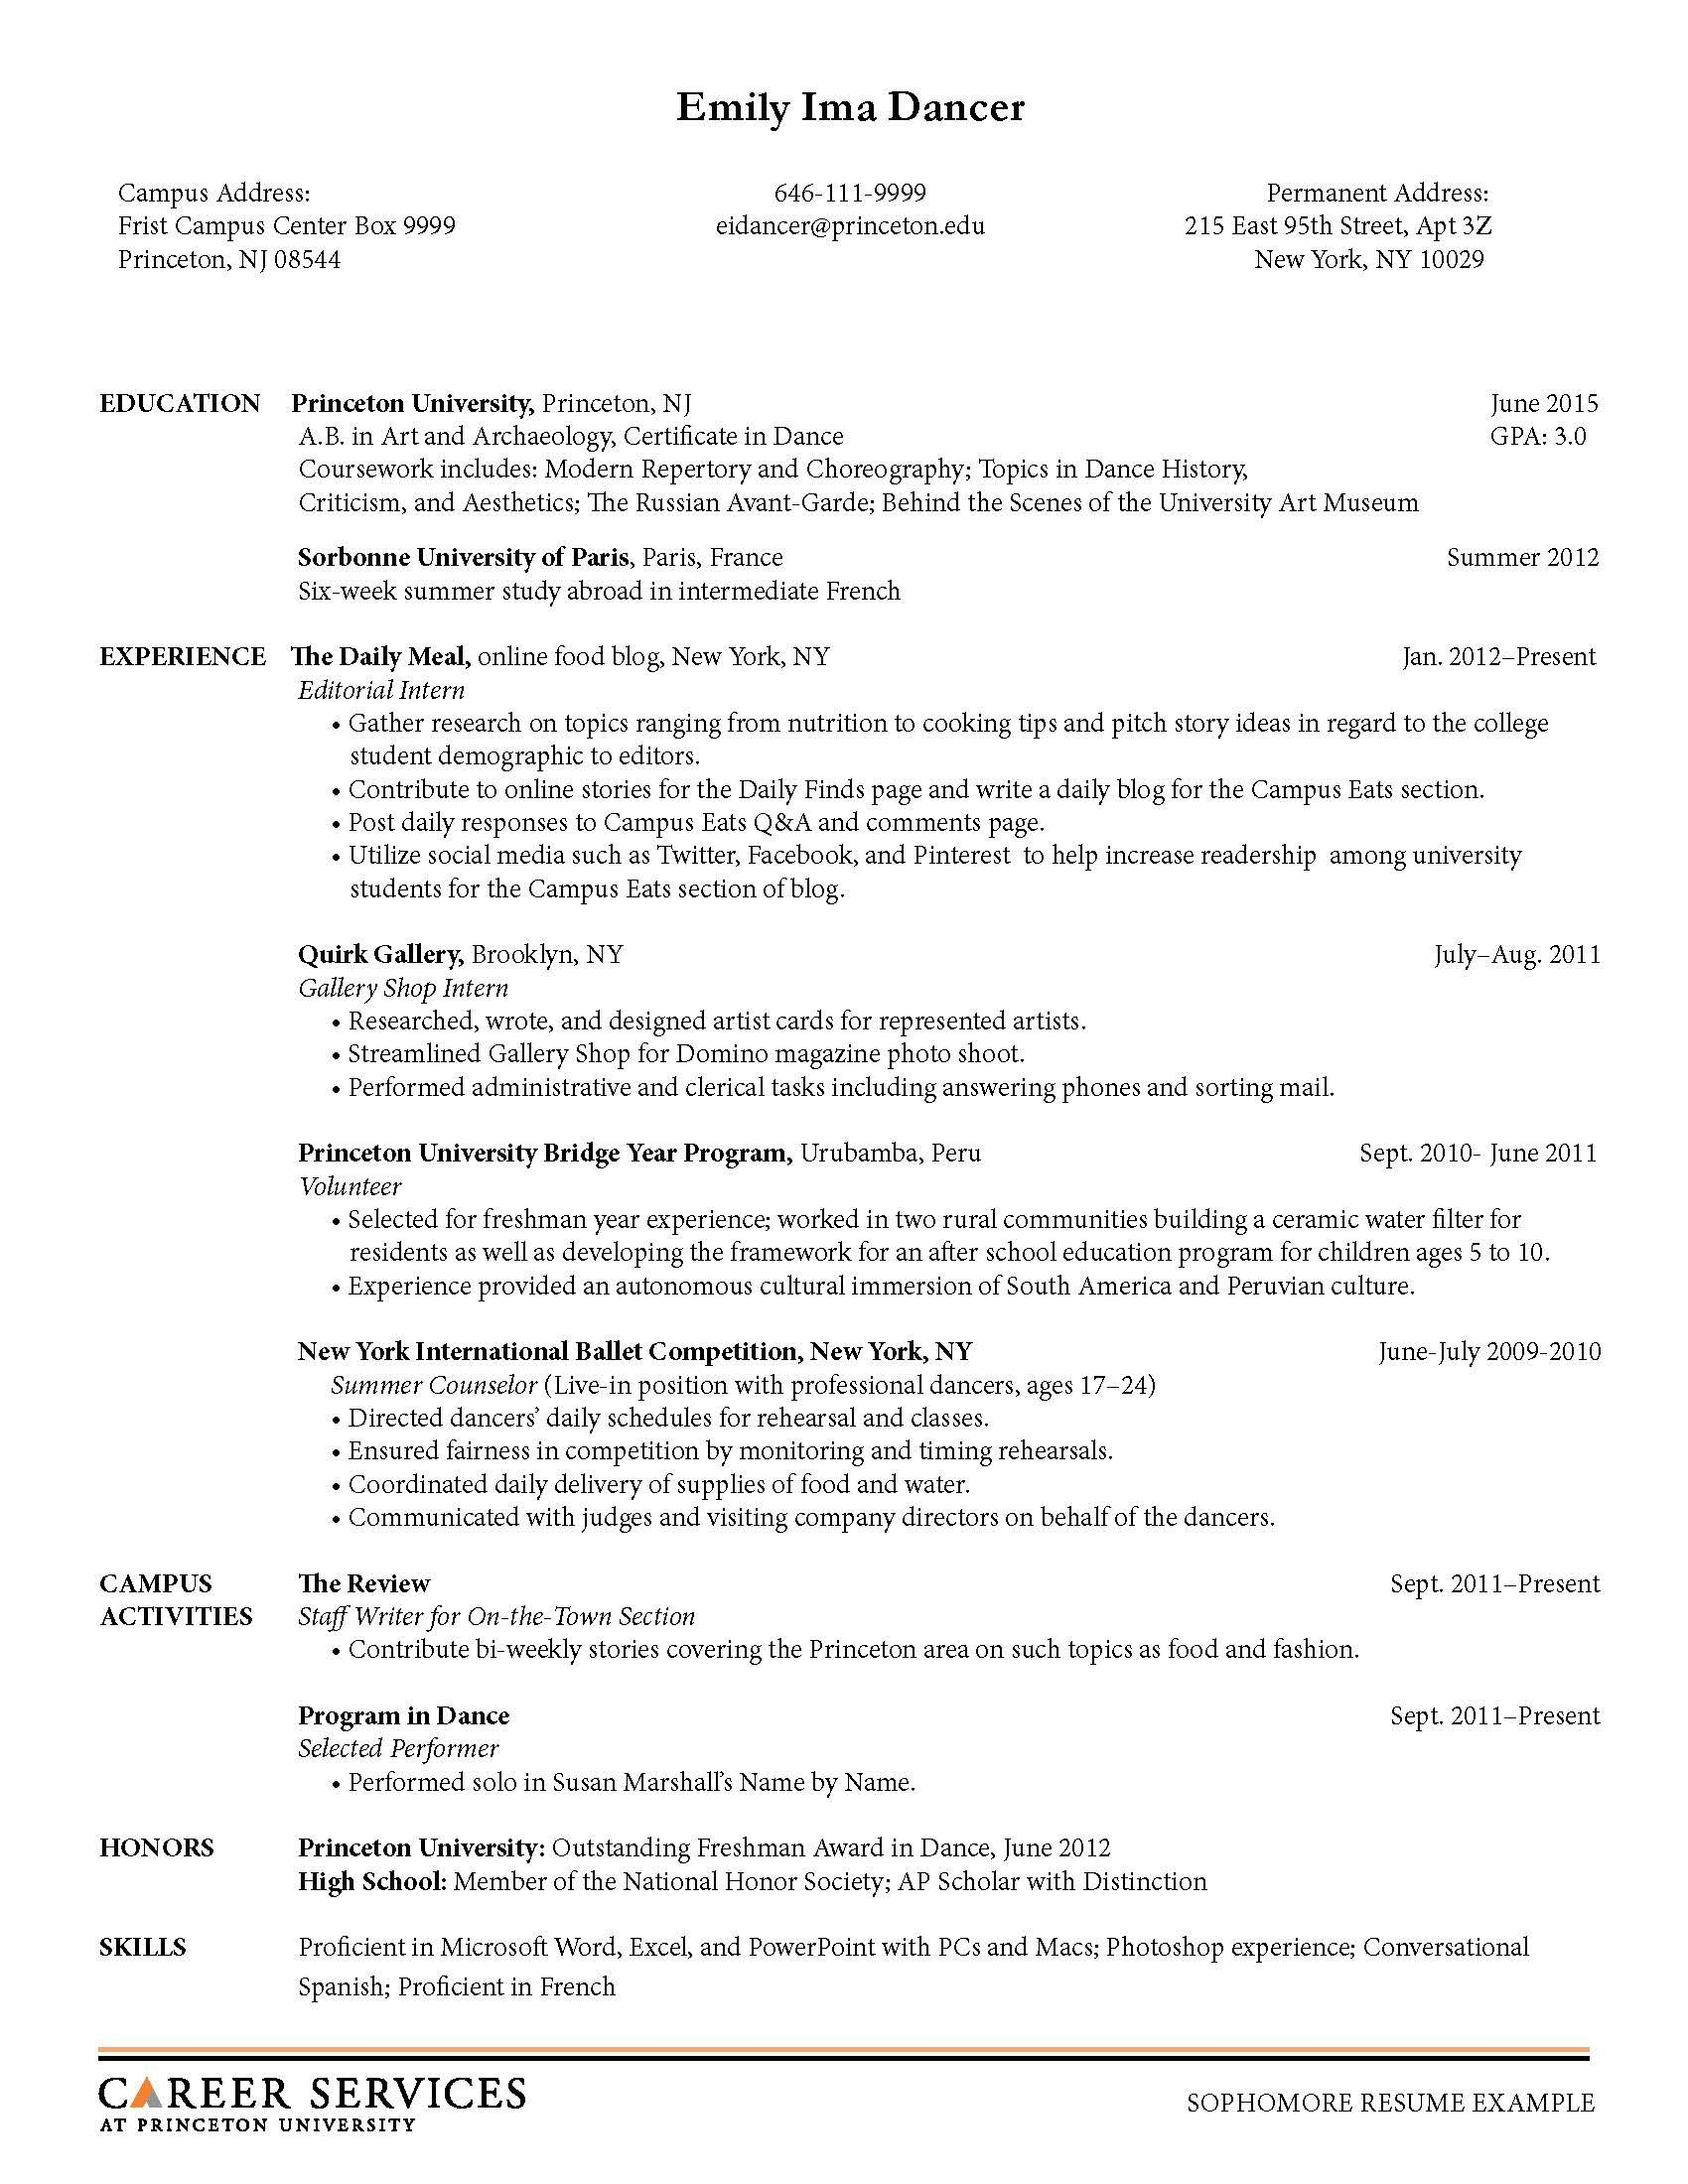 Opposenewapstandardsus  Splendid Sample Resume Resume And Career On Pinterest With Magnificent How To List Technical Skills On Resume Besides Culinary Resumes Furthermore Past Tense On Resume With Appealing Sheryl Sandberg Resume Also What Is Objective In A Resume In Addition Warehouse Manager Resume Sample And Resumes For Graphic Designers As Well As Profile Section Of Resume Example Additionally Beginner Makeup Artist Resume From Pinterestcom With Opposenewapstandardsus  Magnificent Sample Resume Resume And Career On Pinterest With Appealing How To List Technical Skills On Resume Besides Culinary Resumes Furthermore Past Tense On Resume And Splendid Sheryl Sandberg Resume Also What Is Objective In A Resume In Addition Warehouse Manager Resume Sample From Pinterestcom